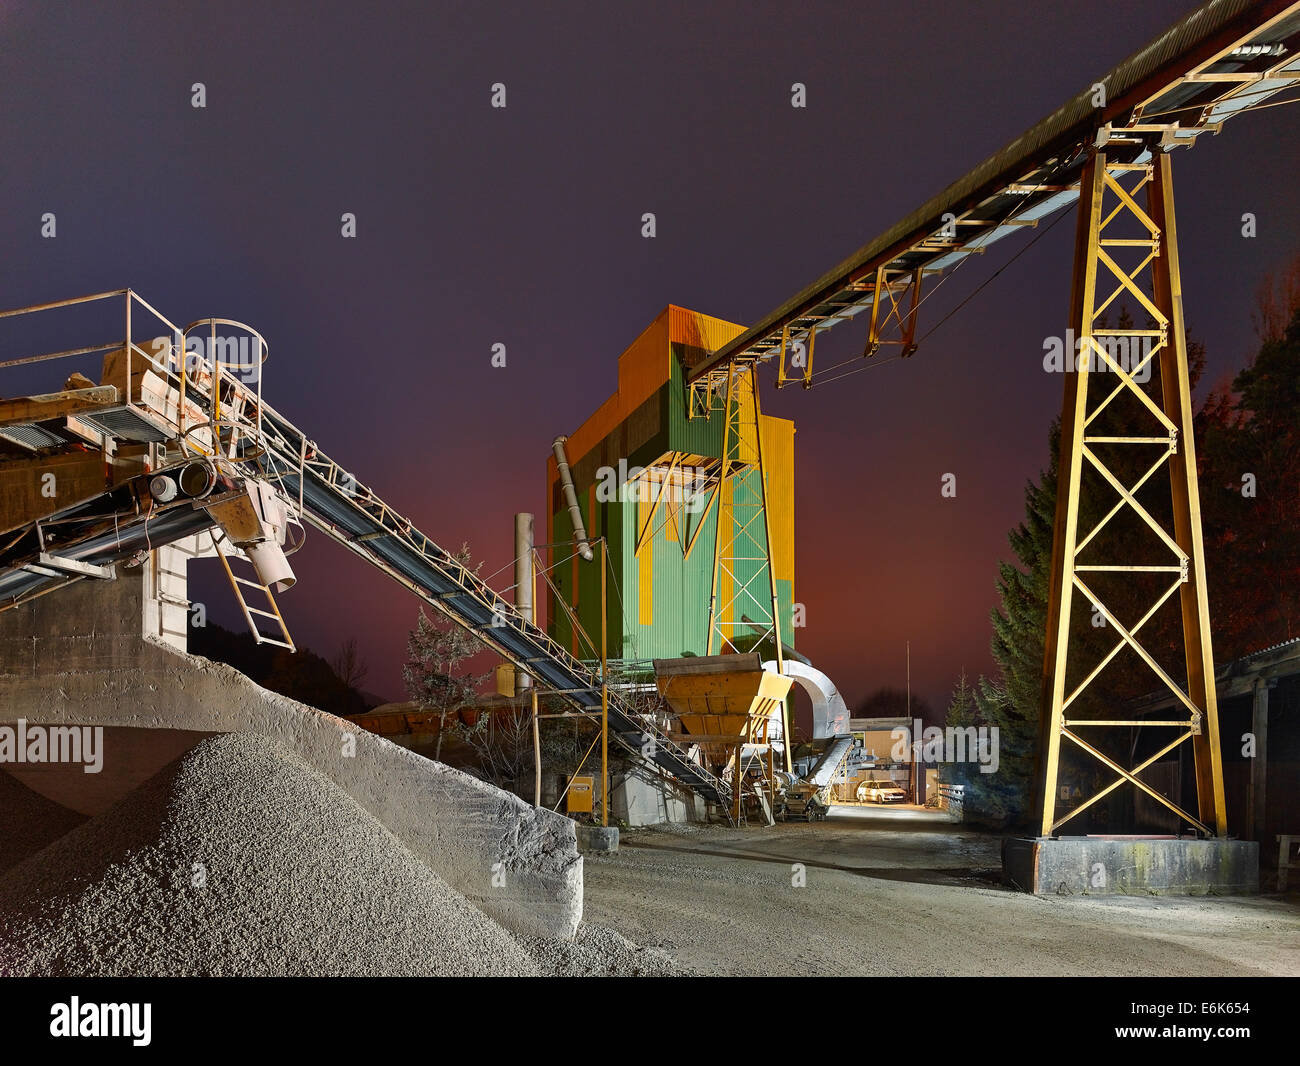 Conveyor belt in a gravel plant, production of tarmac, at dusk, Wörgl, Tyrol, Austria - Stock Image